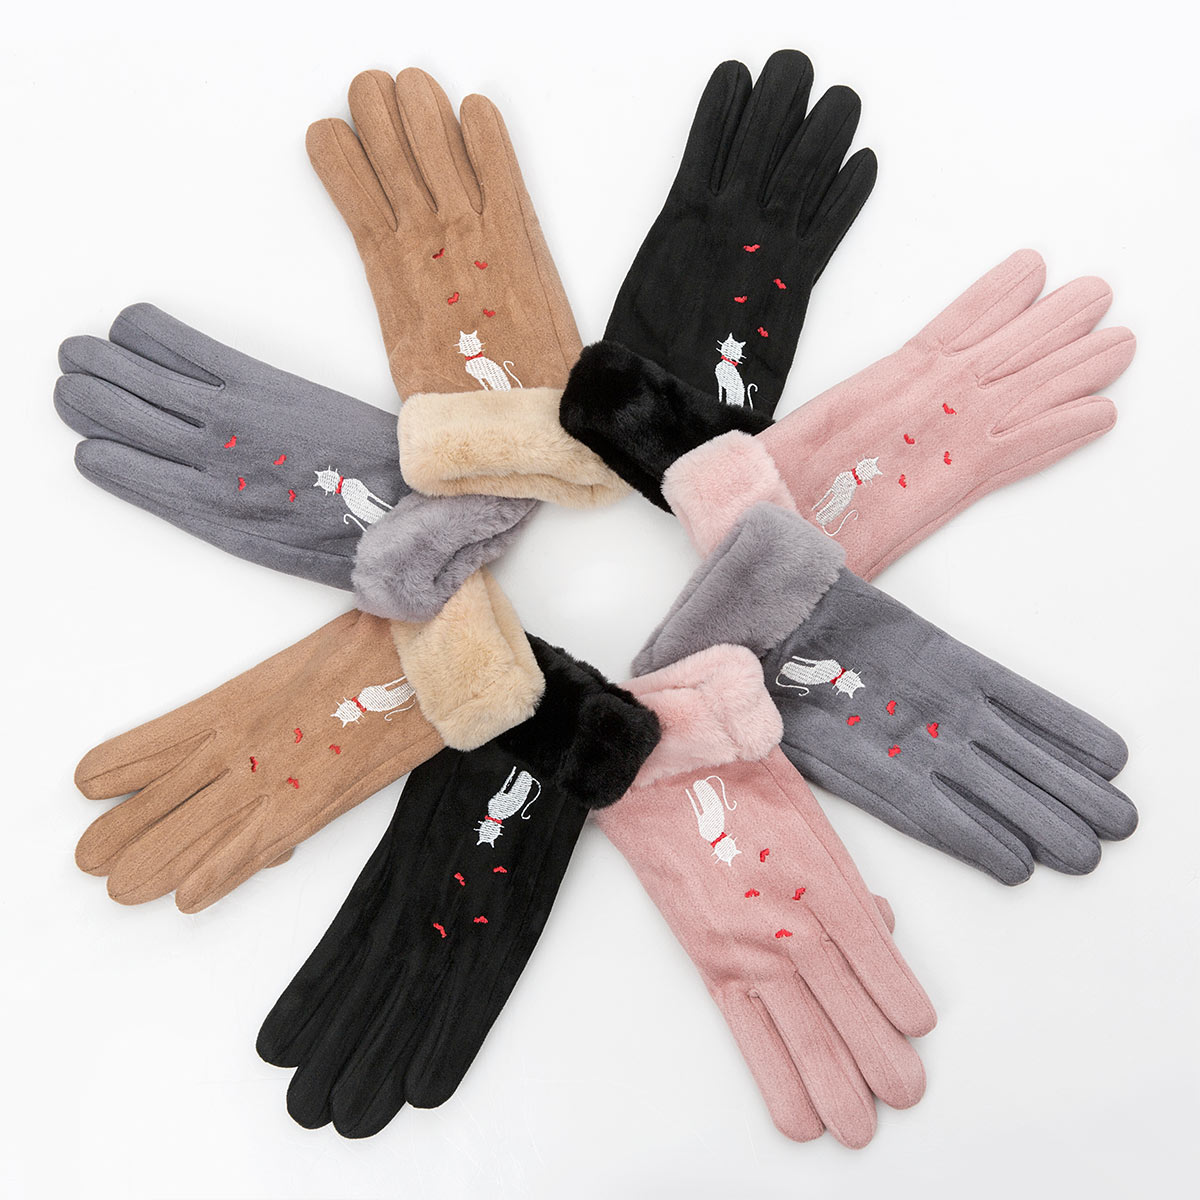 Winter Women Touch Screen Gloves with Embroidery made with a Special Conductive Fabric into Finger Tips for fast Navigation of All Touch Screen Device 4